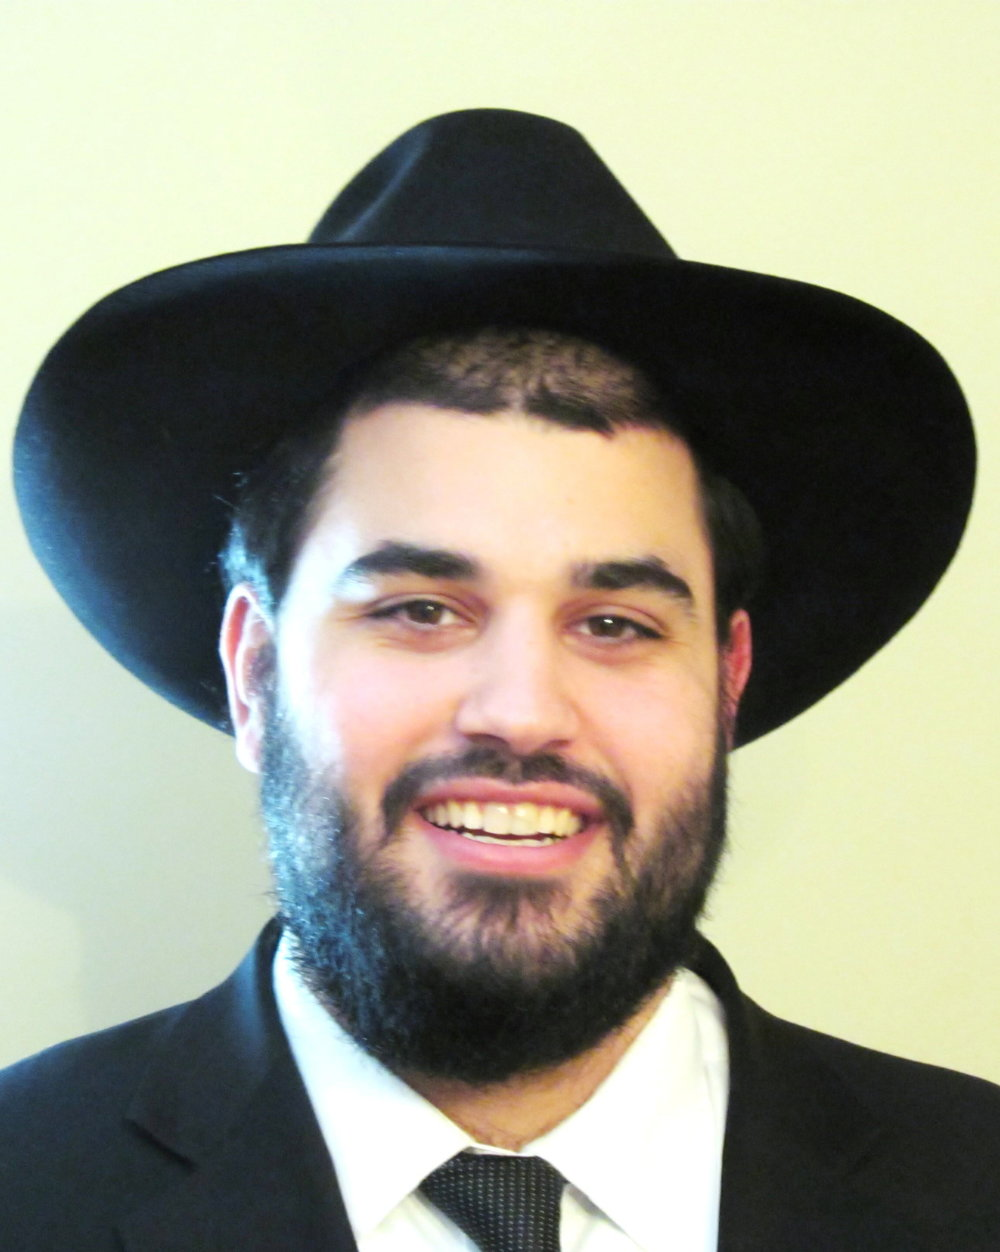 Rabbi Avner Sela